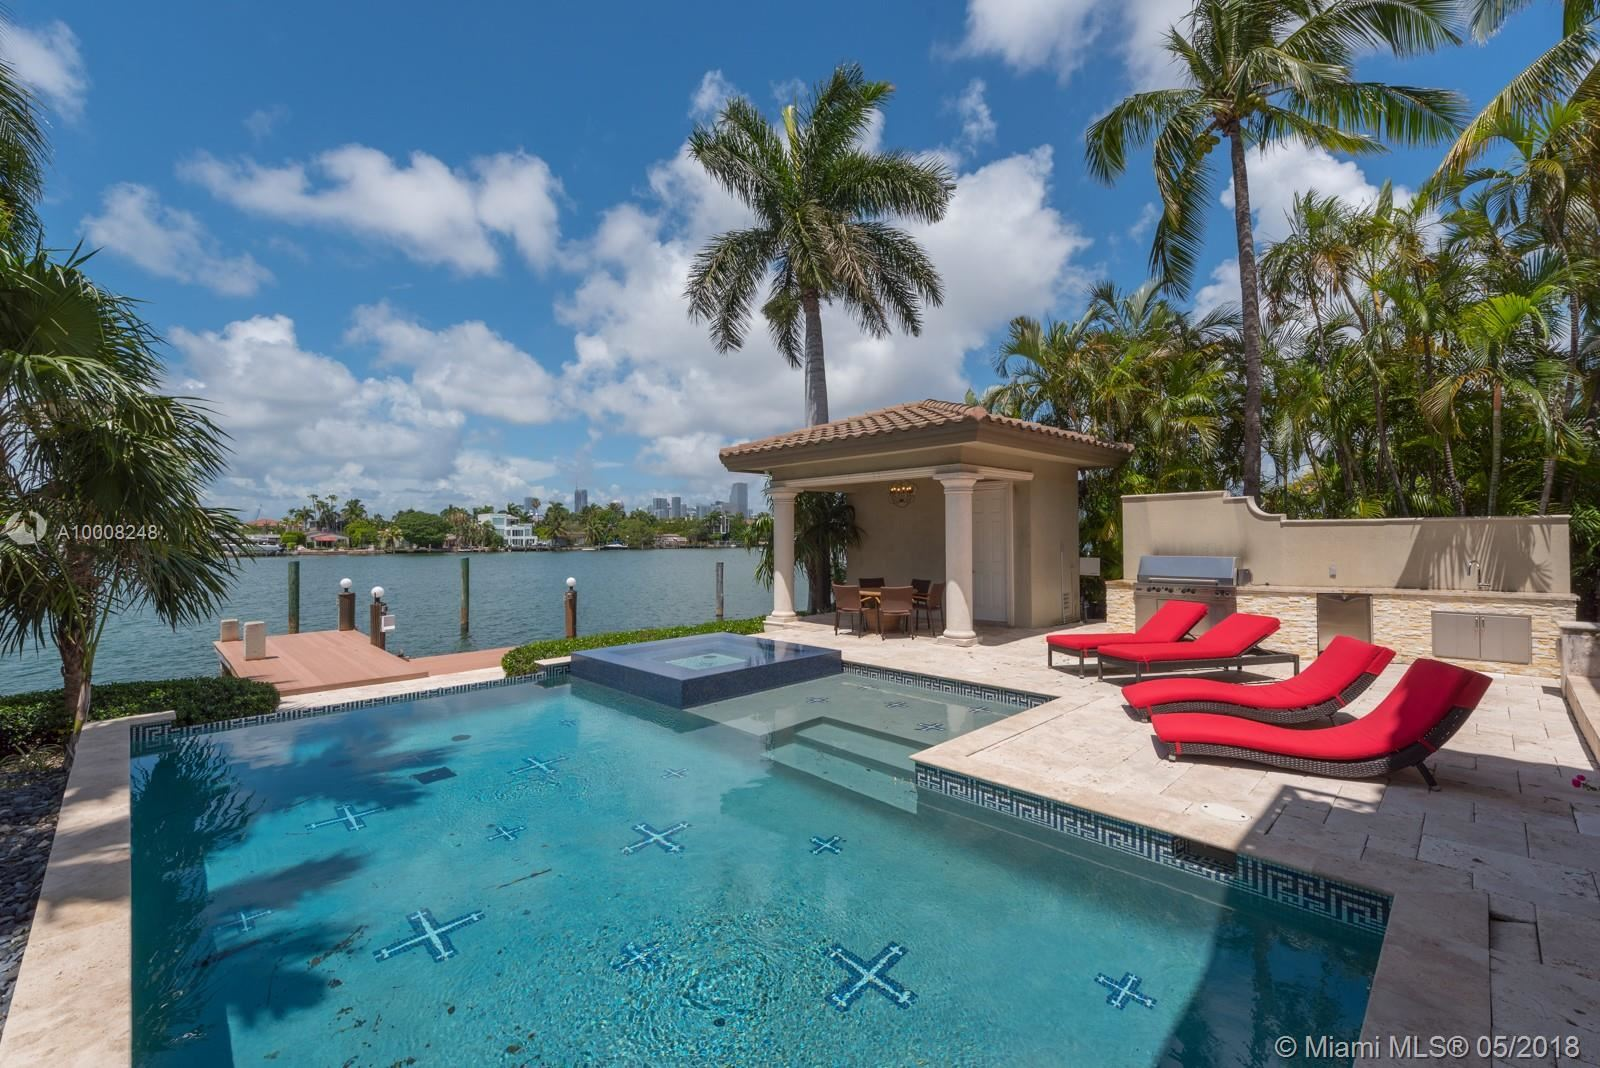 Photo 24 of Listing MLS a10008248 in 280 S HIBISCUS DR Miami Beach FL 33139